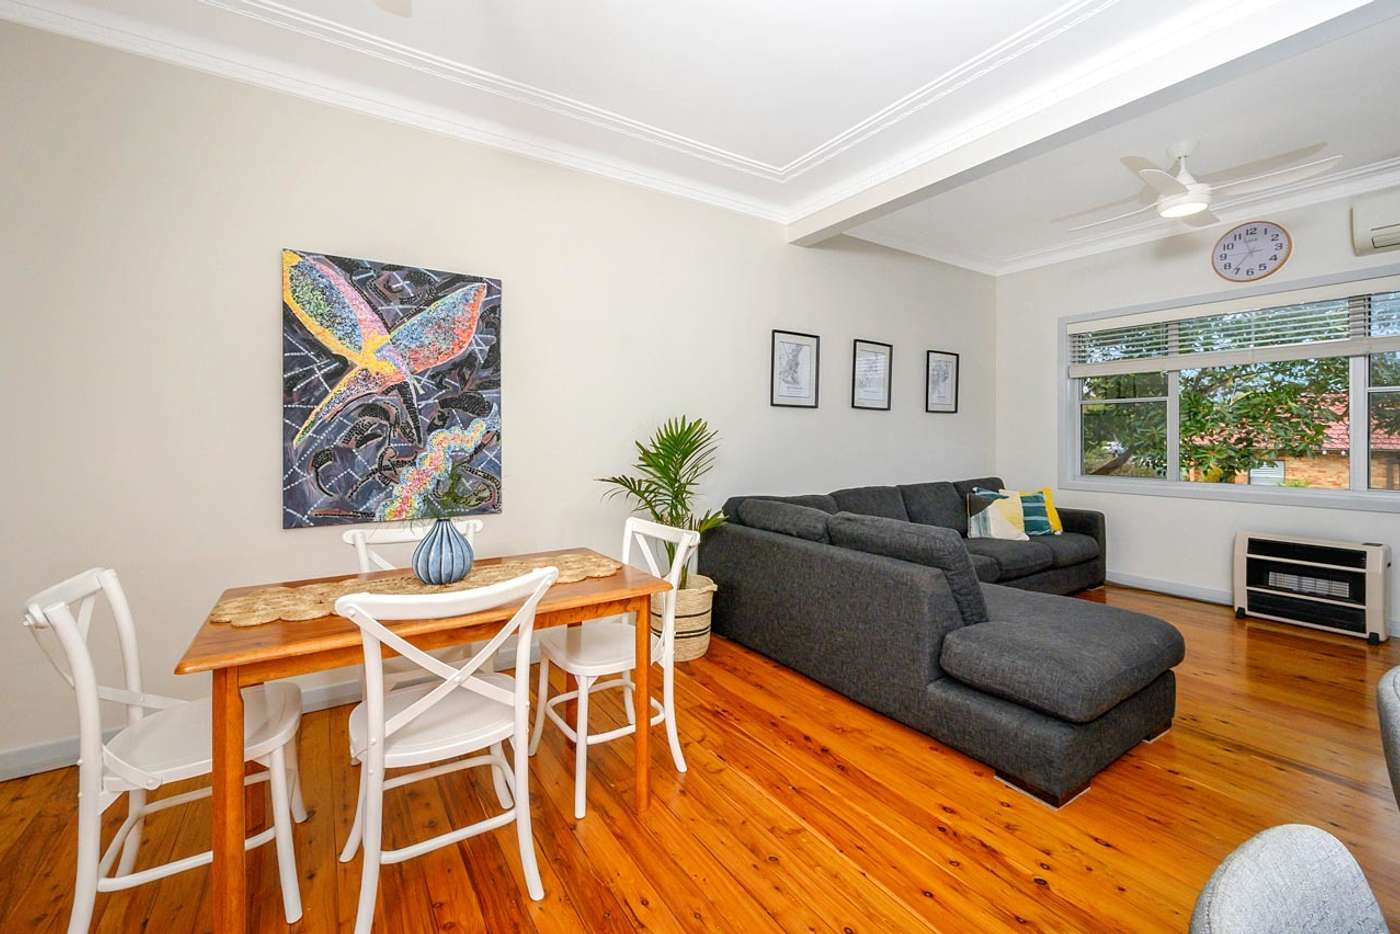 Fifth view of Homely house listing, 3 Delando Street, Waratah NSW 2298